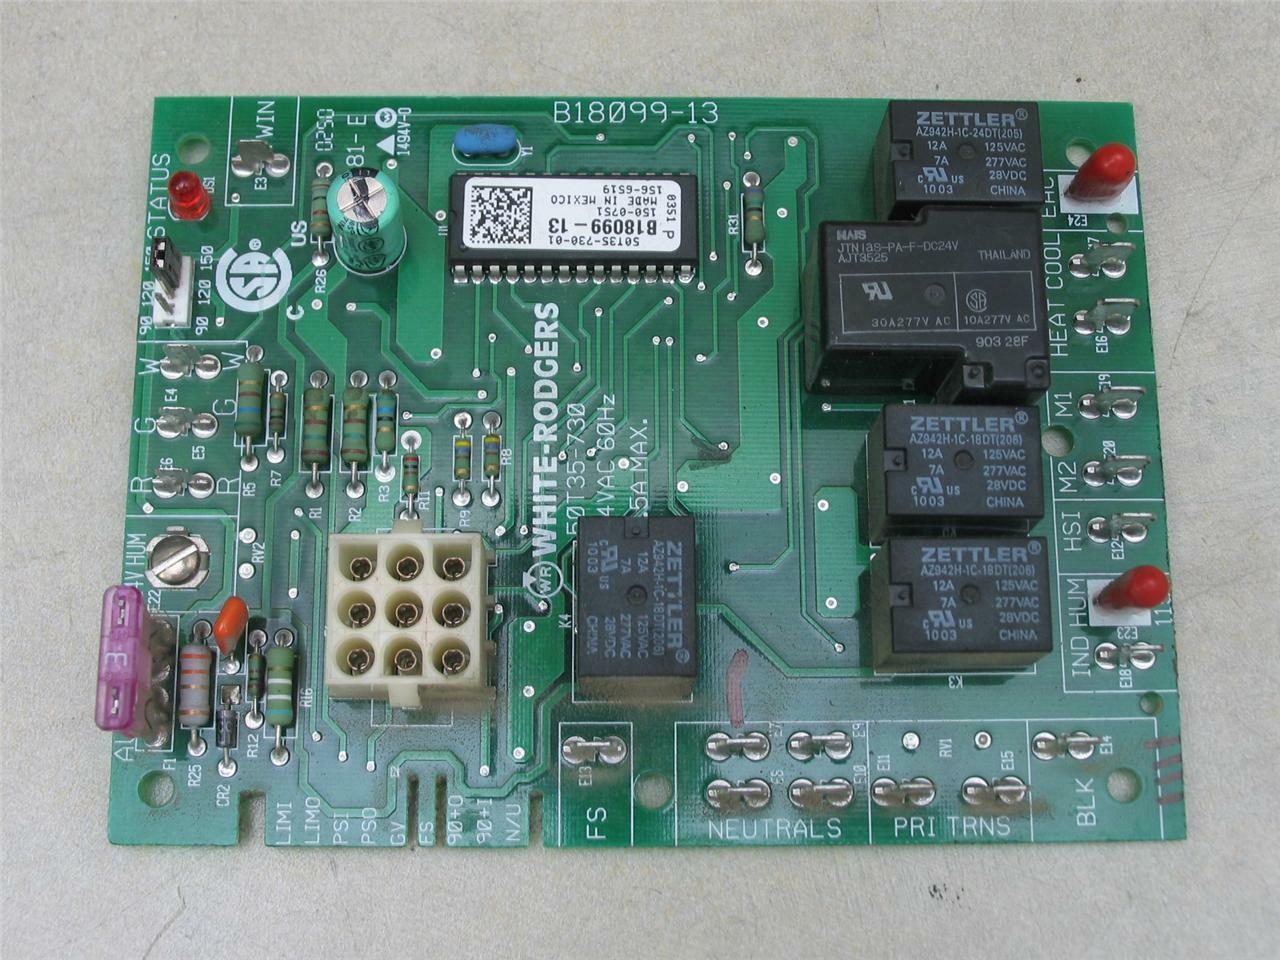 s l1600 b18099 13 wiring diagram ford factory stereo wiring diagram gmp075 3 wiring diagram at nearapp.co